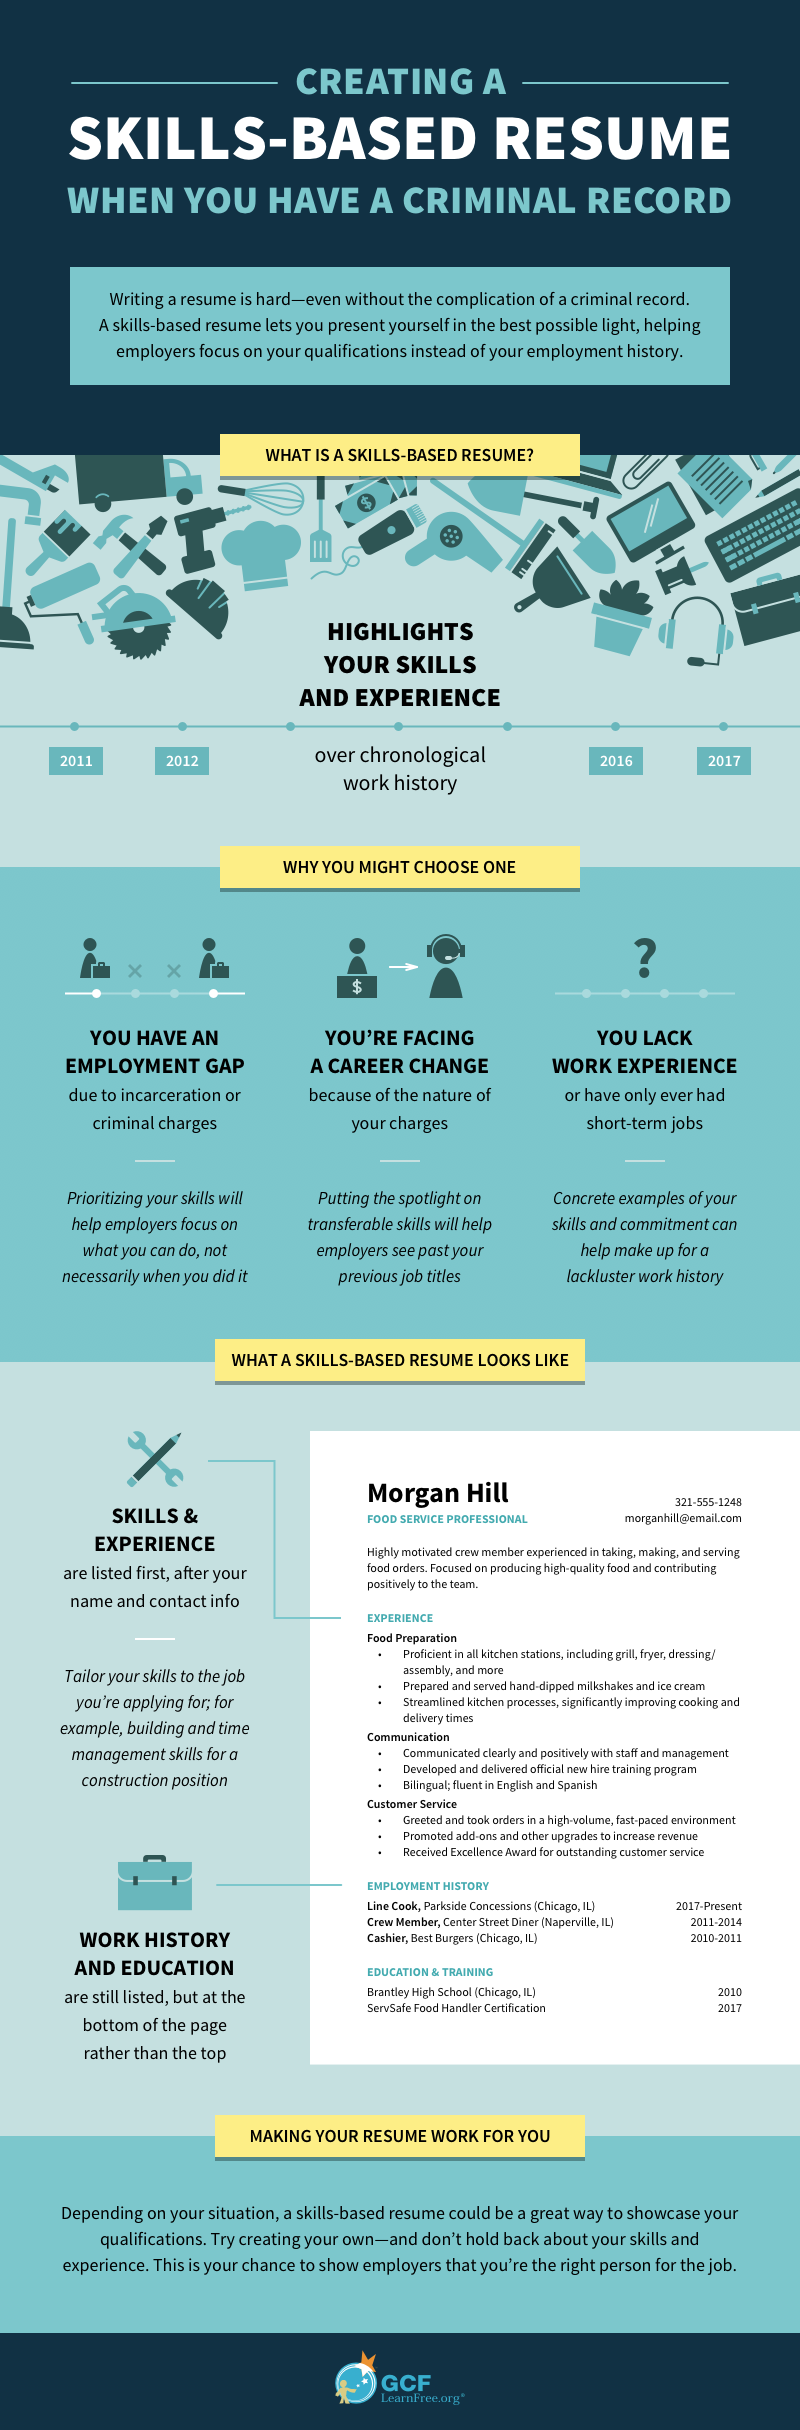 An infographic that details how to create a skills-based resume with a criminal record.